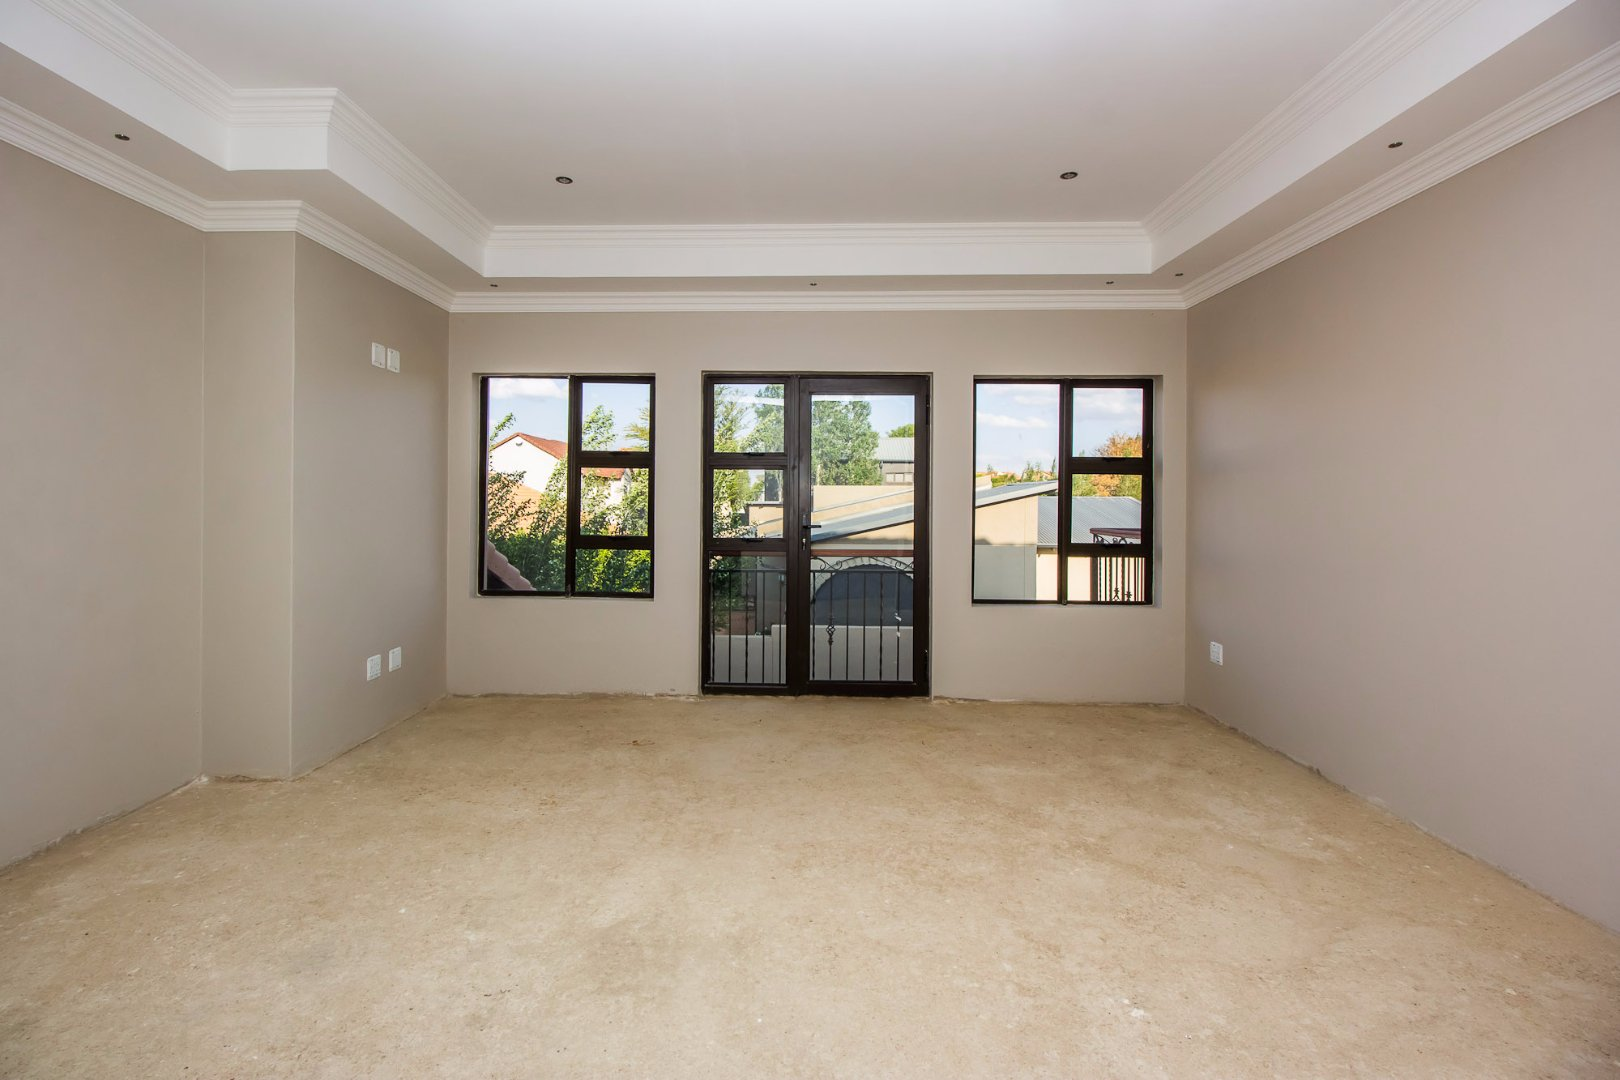 Hazeldean property for sale. Ref No: 13540486. Picture no 12